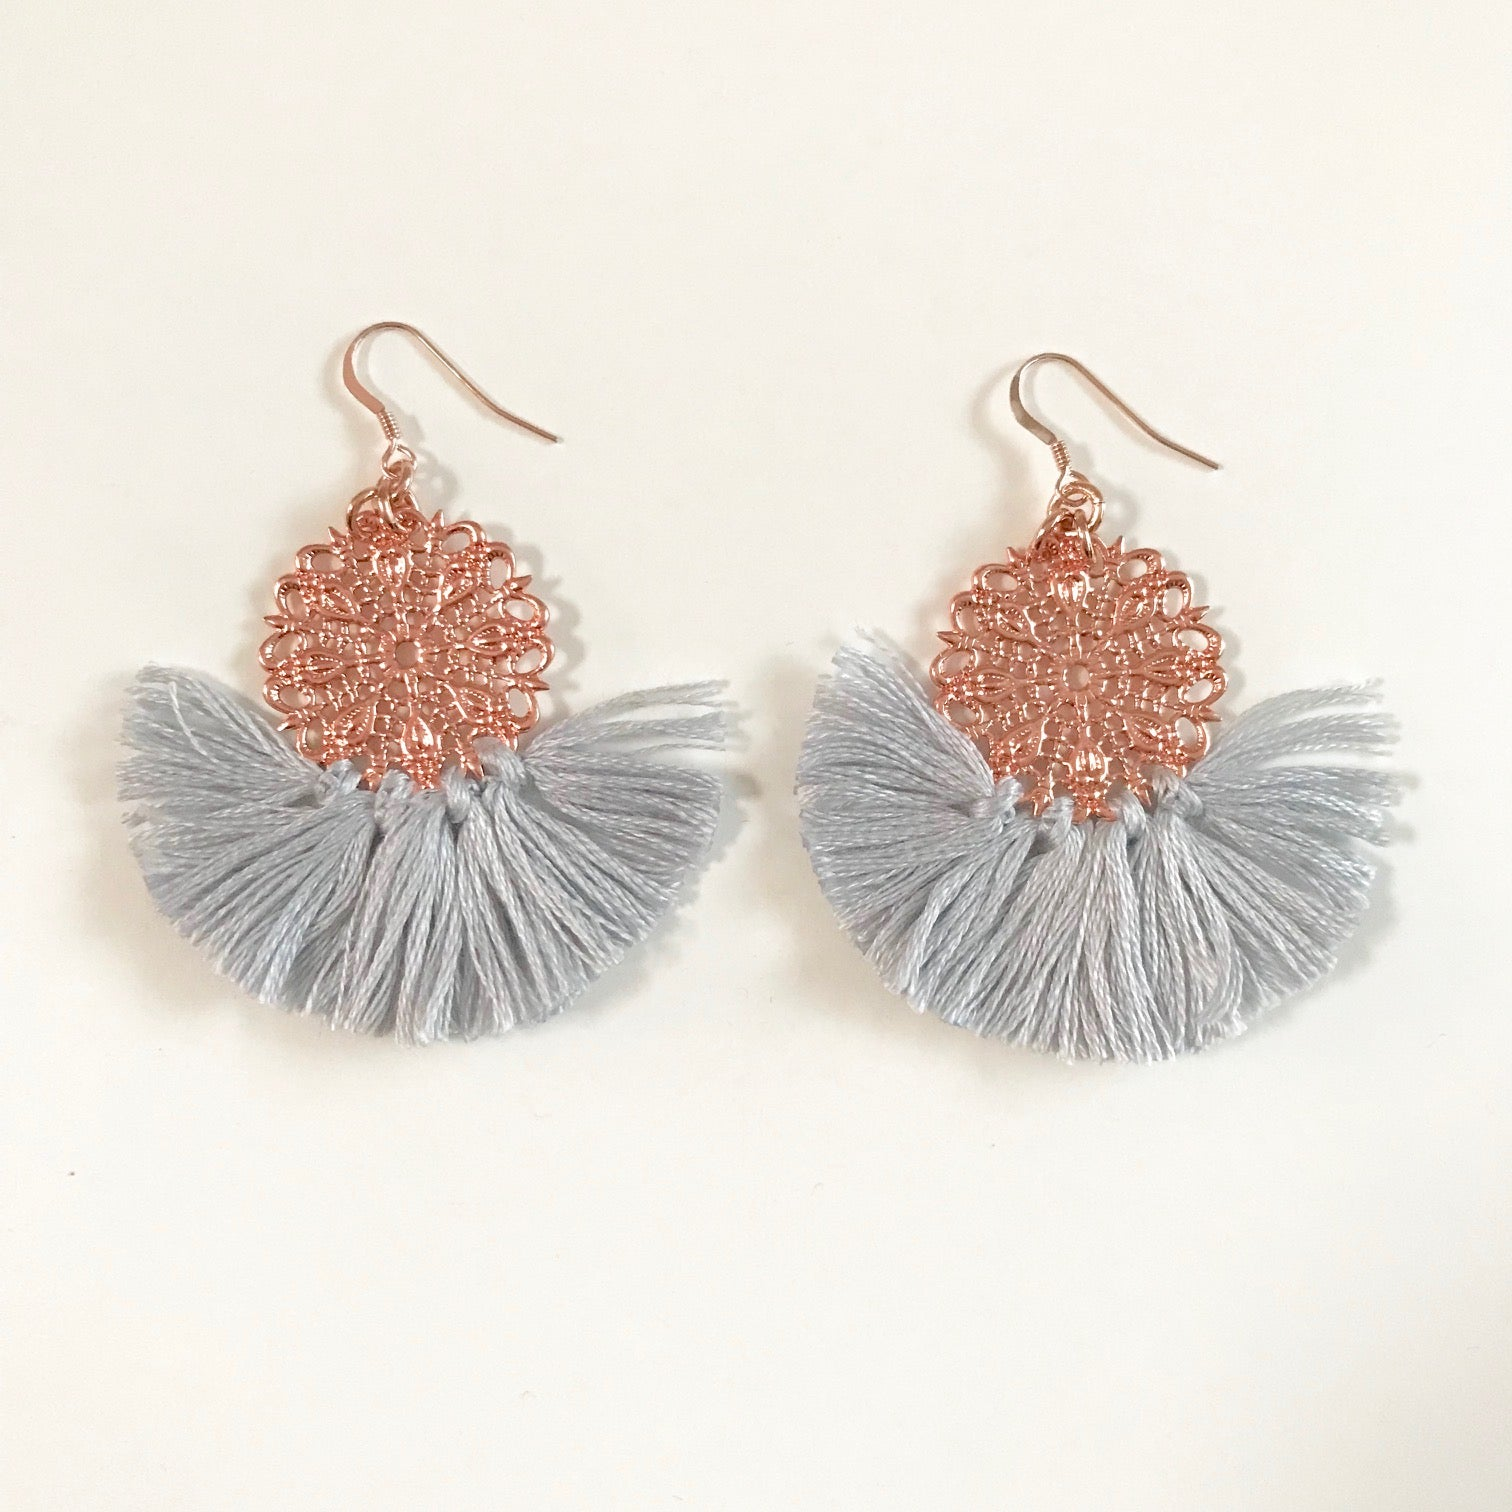 Ballerina Baby Fringe Earrings - Sky Gray